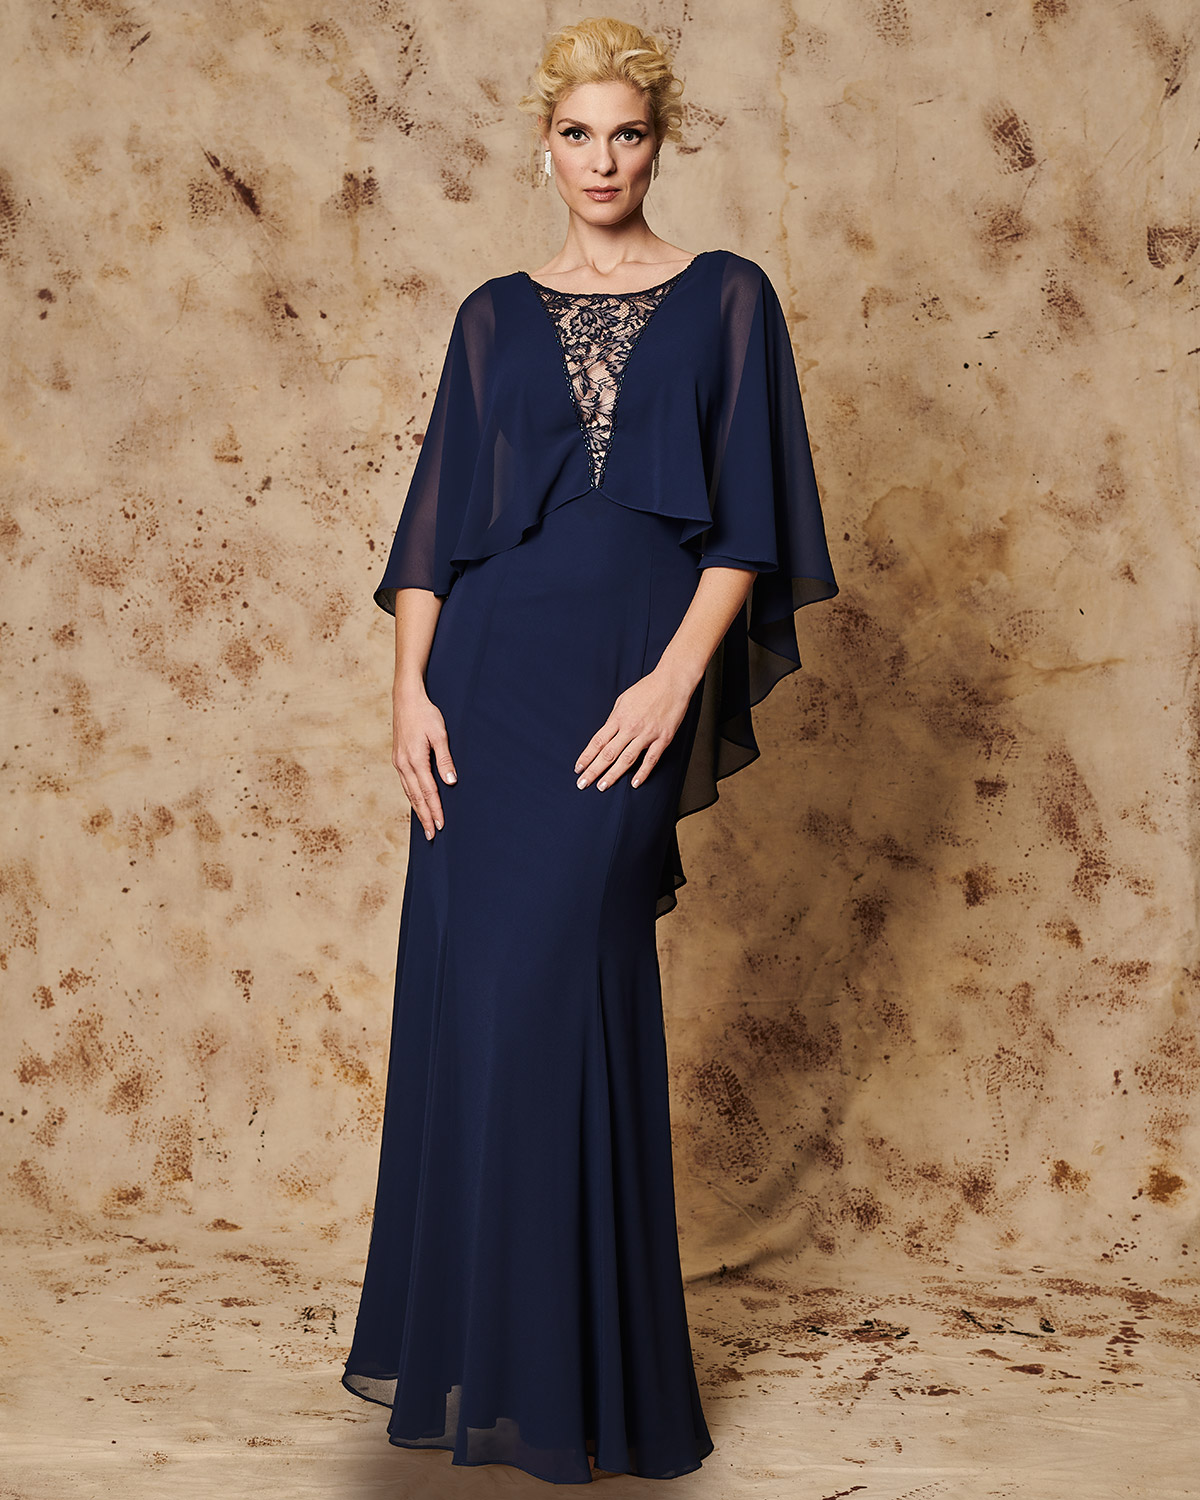 Classic Dresses / Long Evening Dress with wide sleeves and lace details